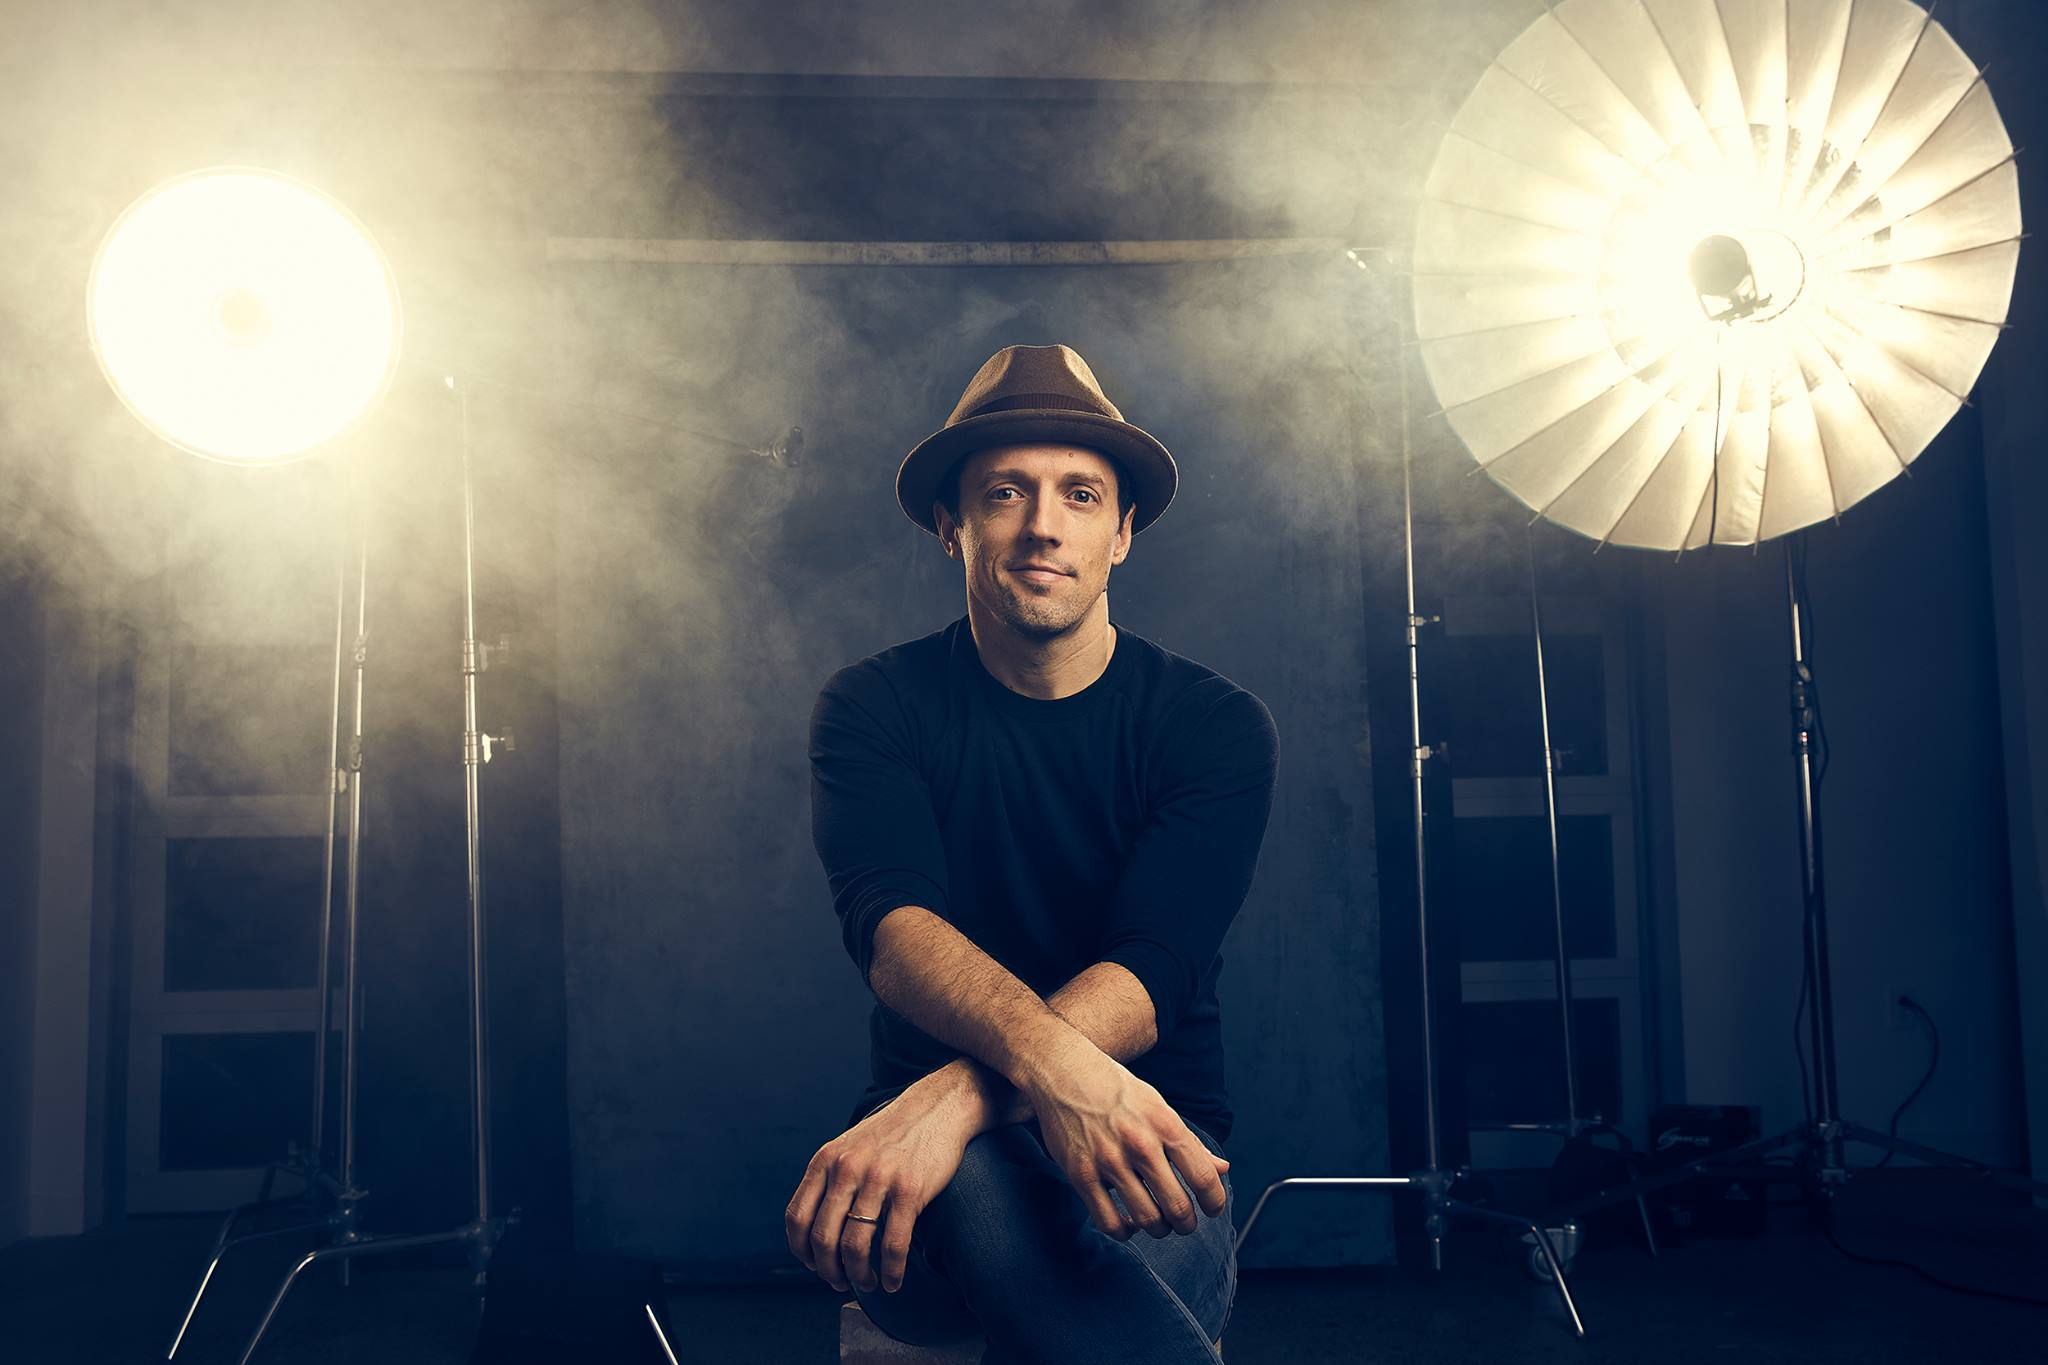 jason mraz upcoming concerts in singapore in 2019